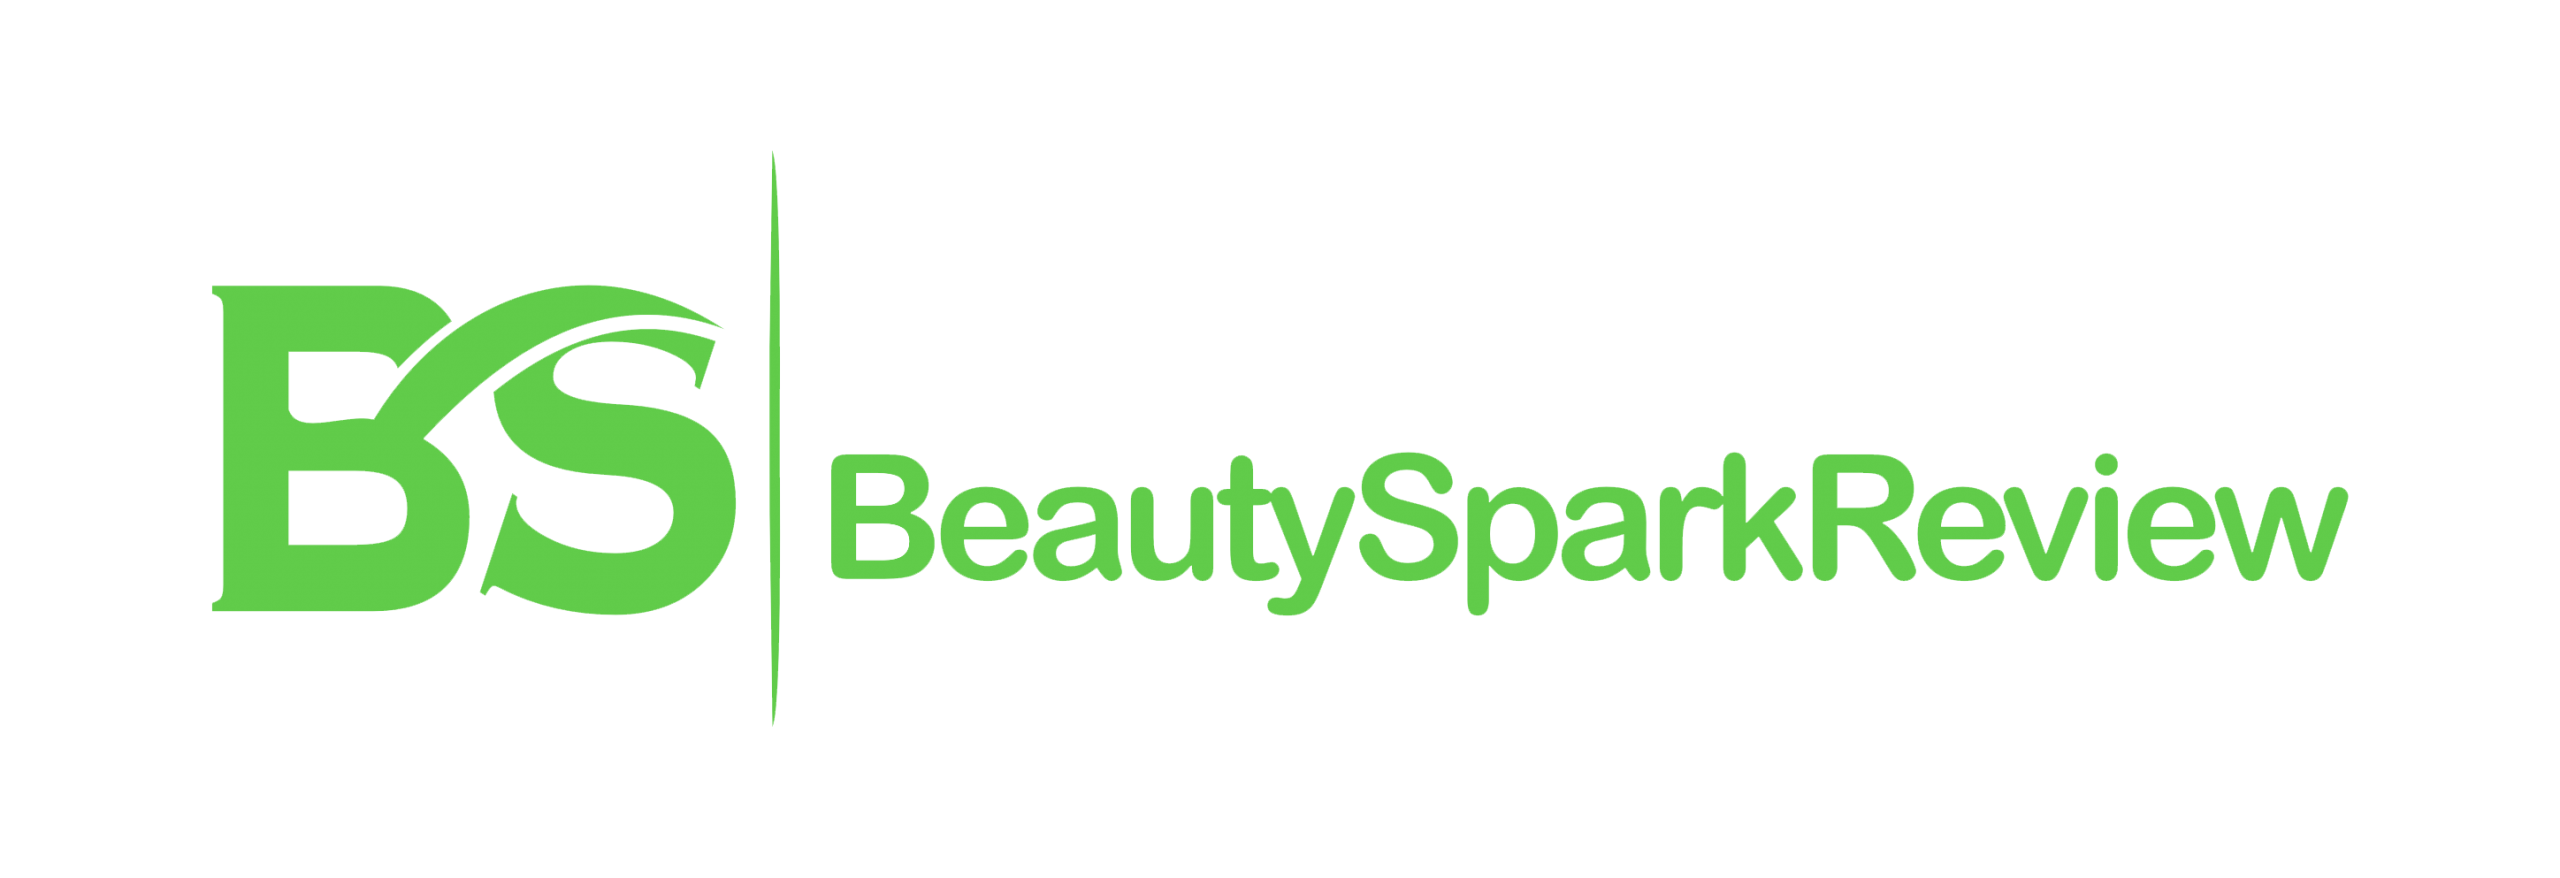 BeautySparkReview